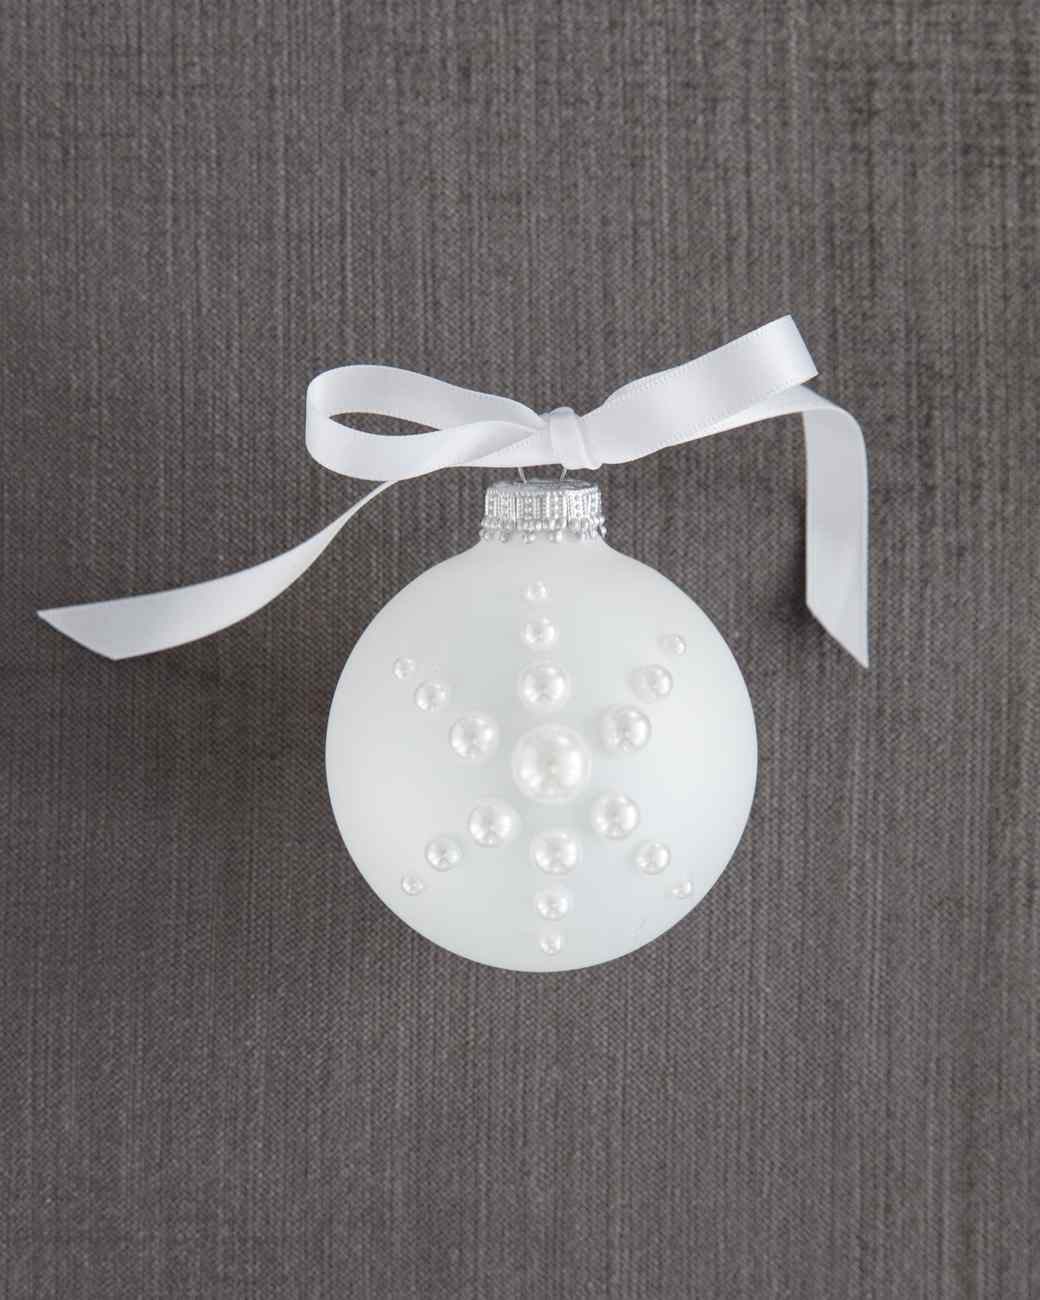 17 Snowflake Ornaments That\'ll Guarantee a White Christmas | Martha ...